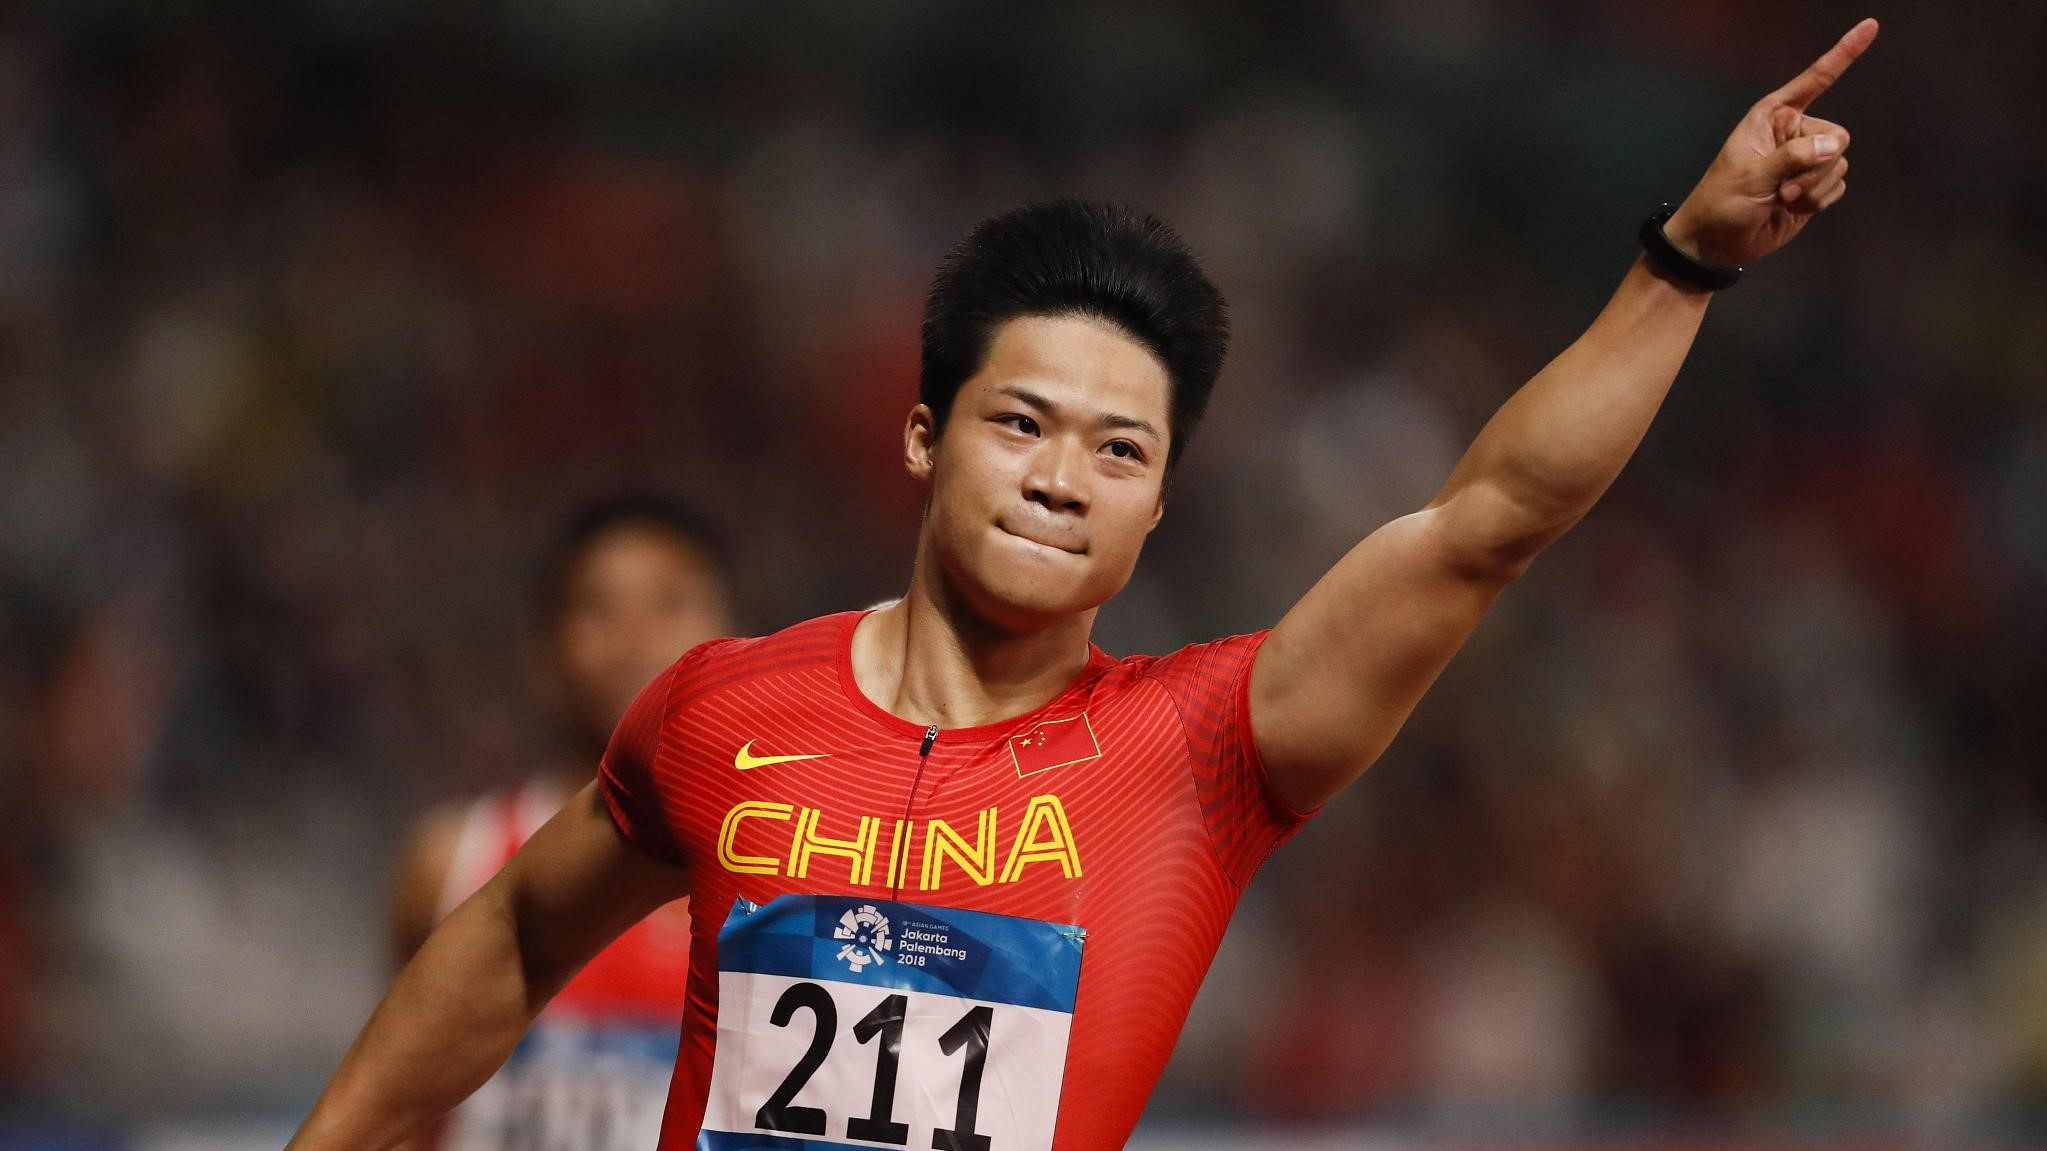 Chinese sprinter Su Bingtian announces schedule for early ...